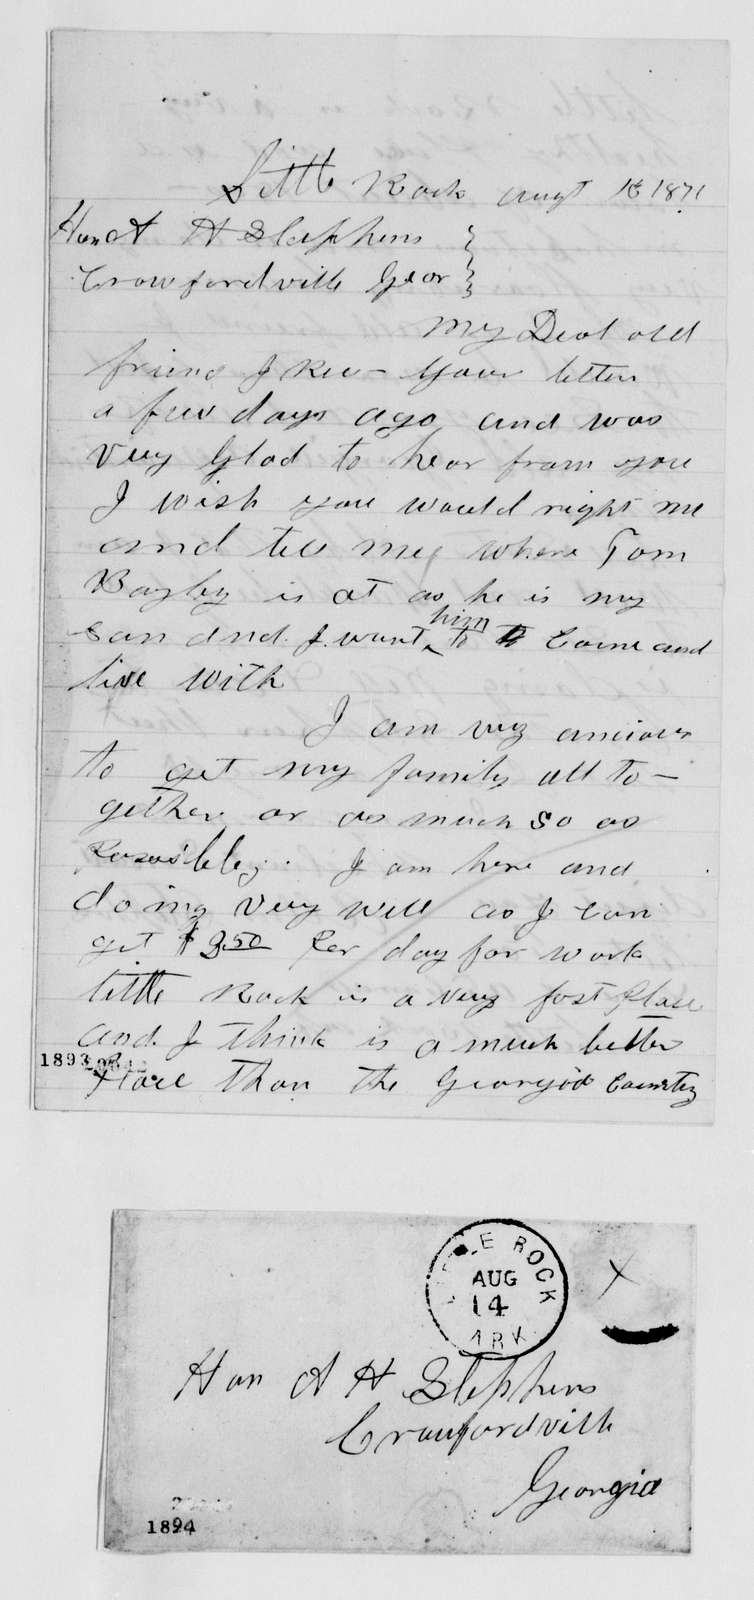 Alexander Hamilton Stephens Papers: Letters from Servants, 1867-1883; Bound vol., 1867-1883, undated